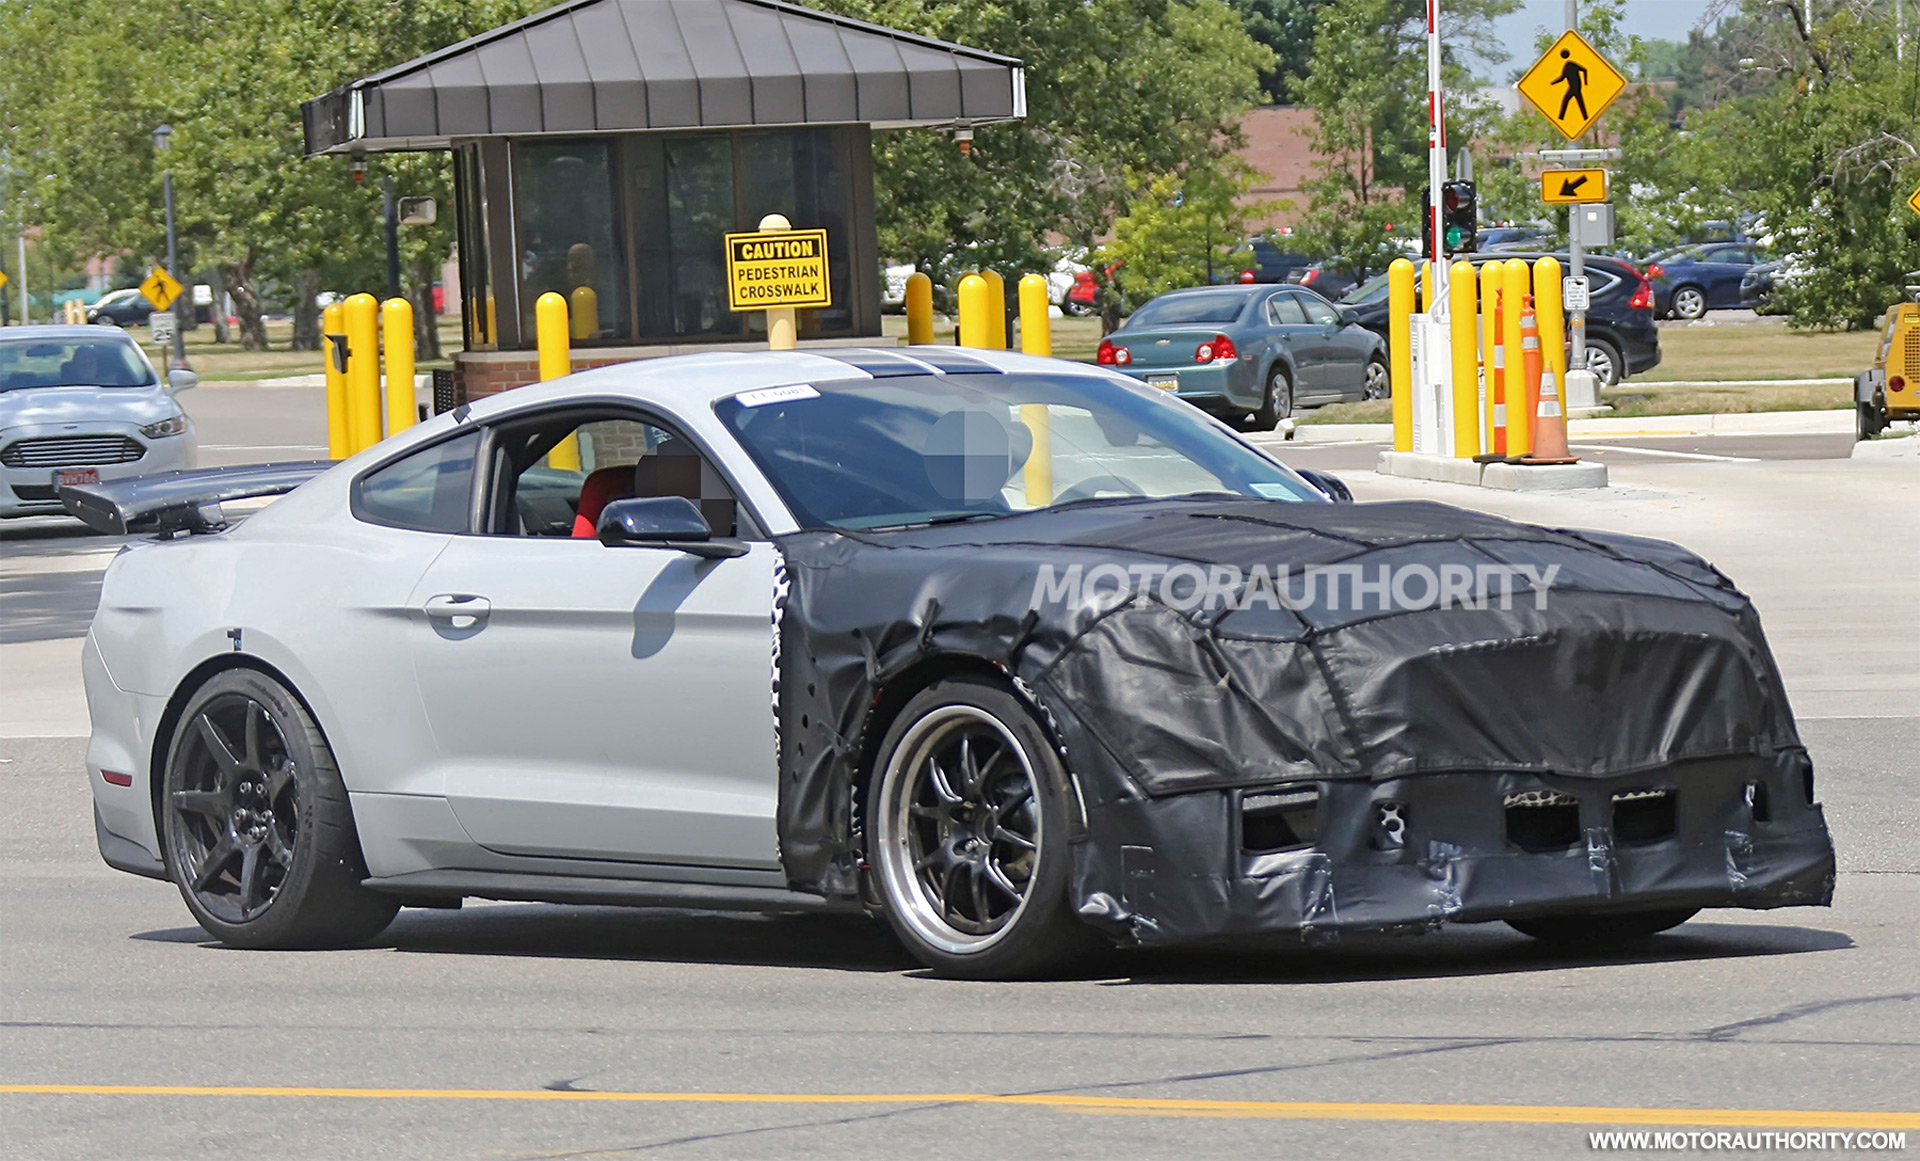 Awesome 2020 Ford Mustang Shelby GT500 Spy Shots   Image Via S. Baldauf/SB